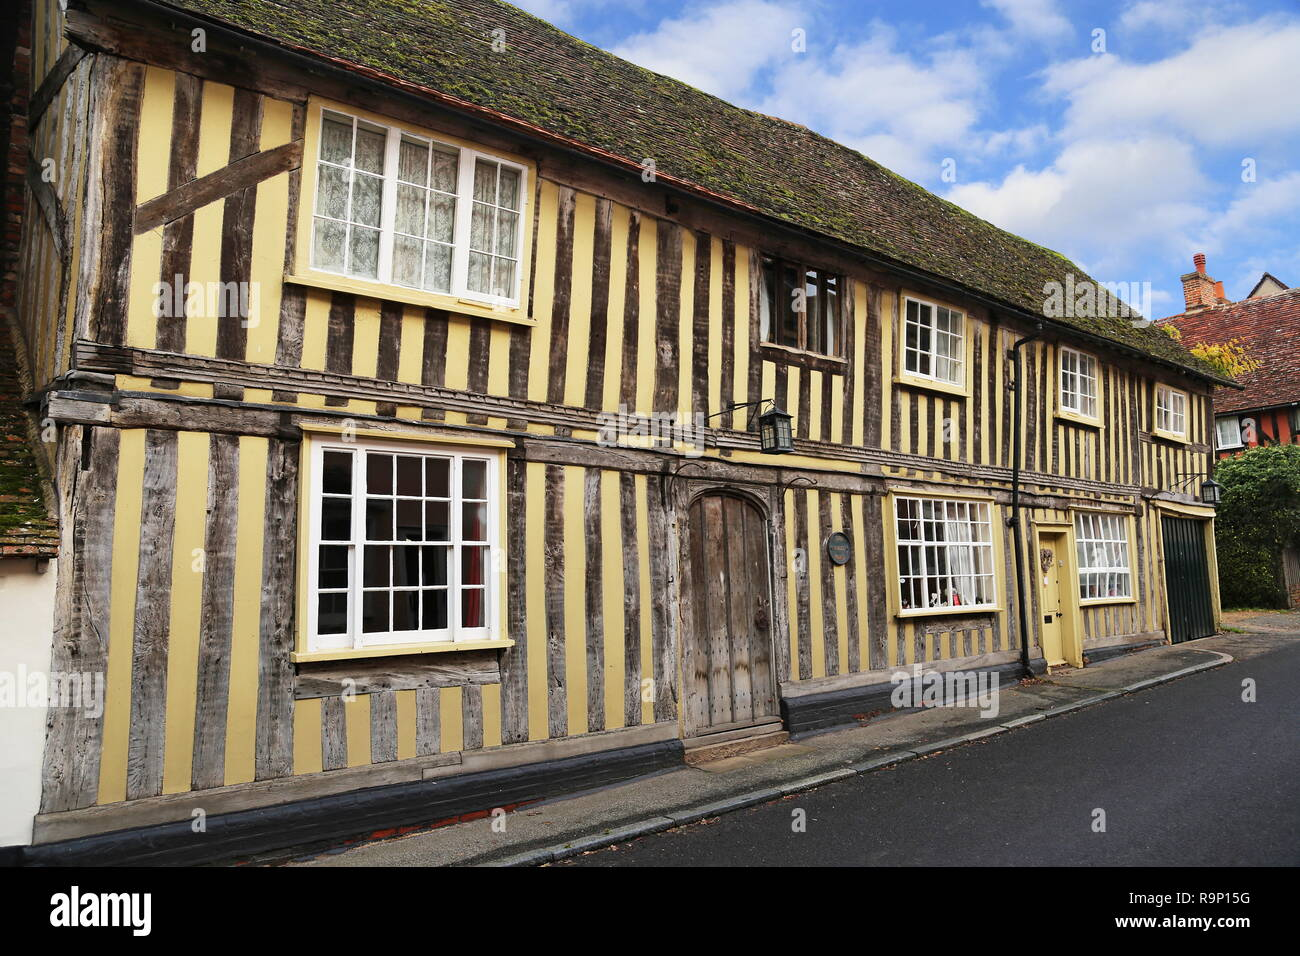 White Horse pub (now private house), Water Street, Lavenham, Babergh district, Suffolk, East Anglia, England, Great Britain, United Kingdom UK, Europe - Stock Image